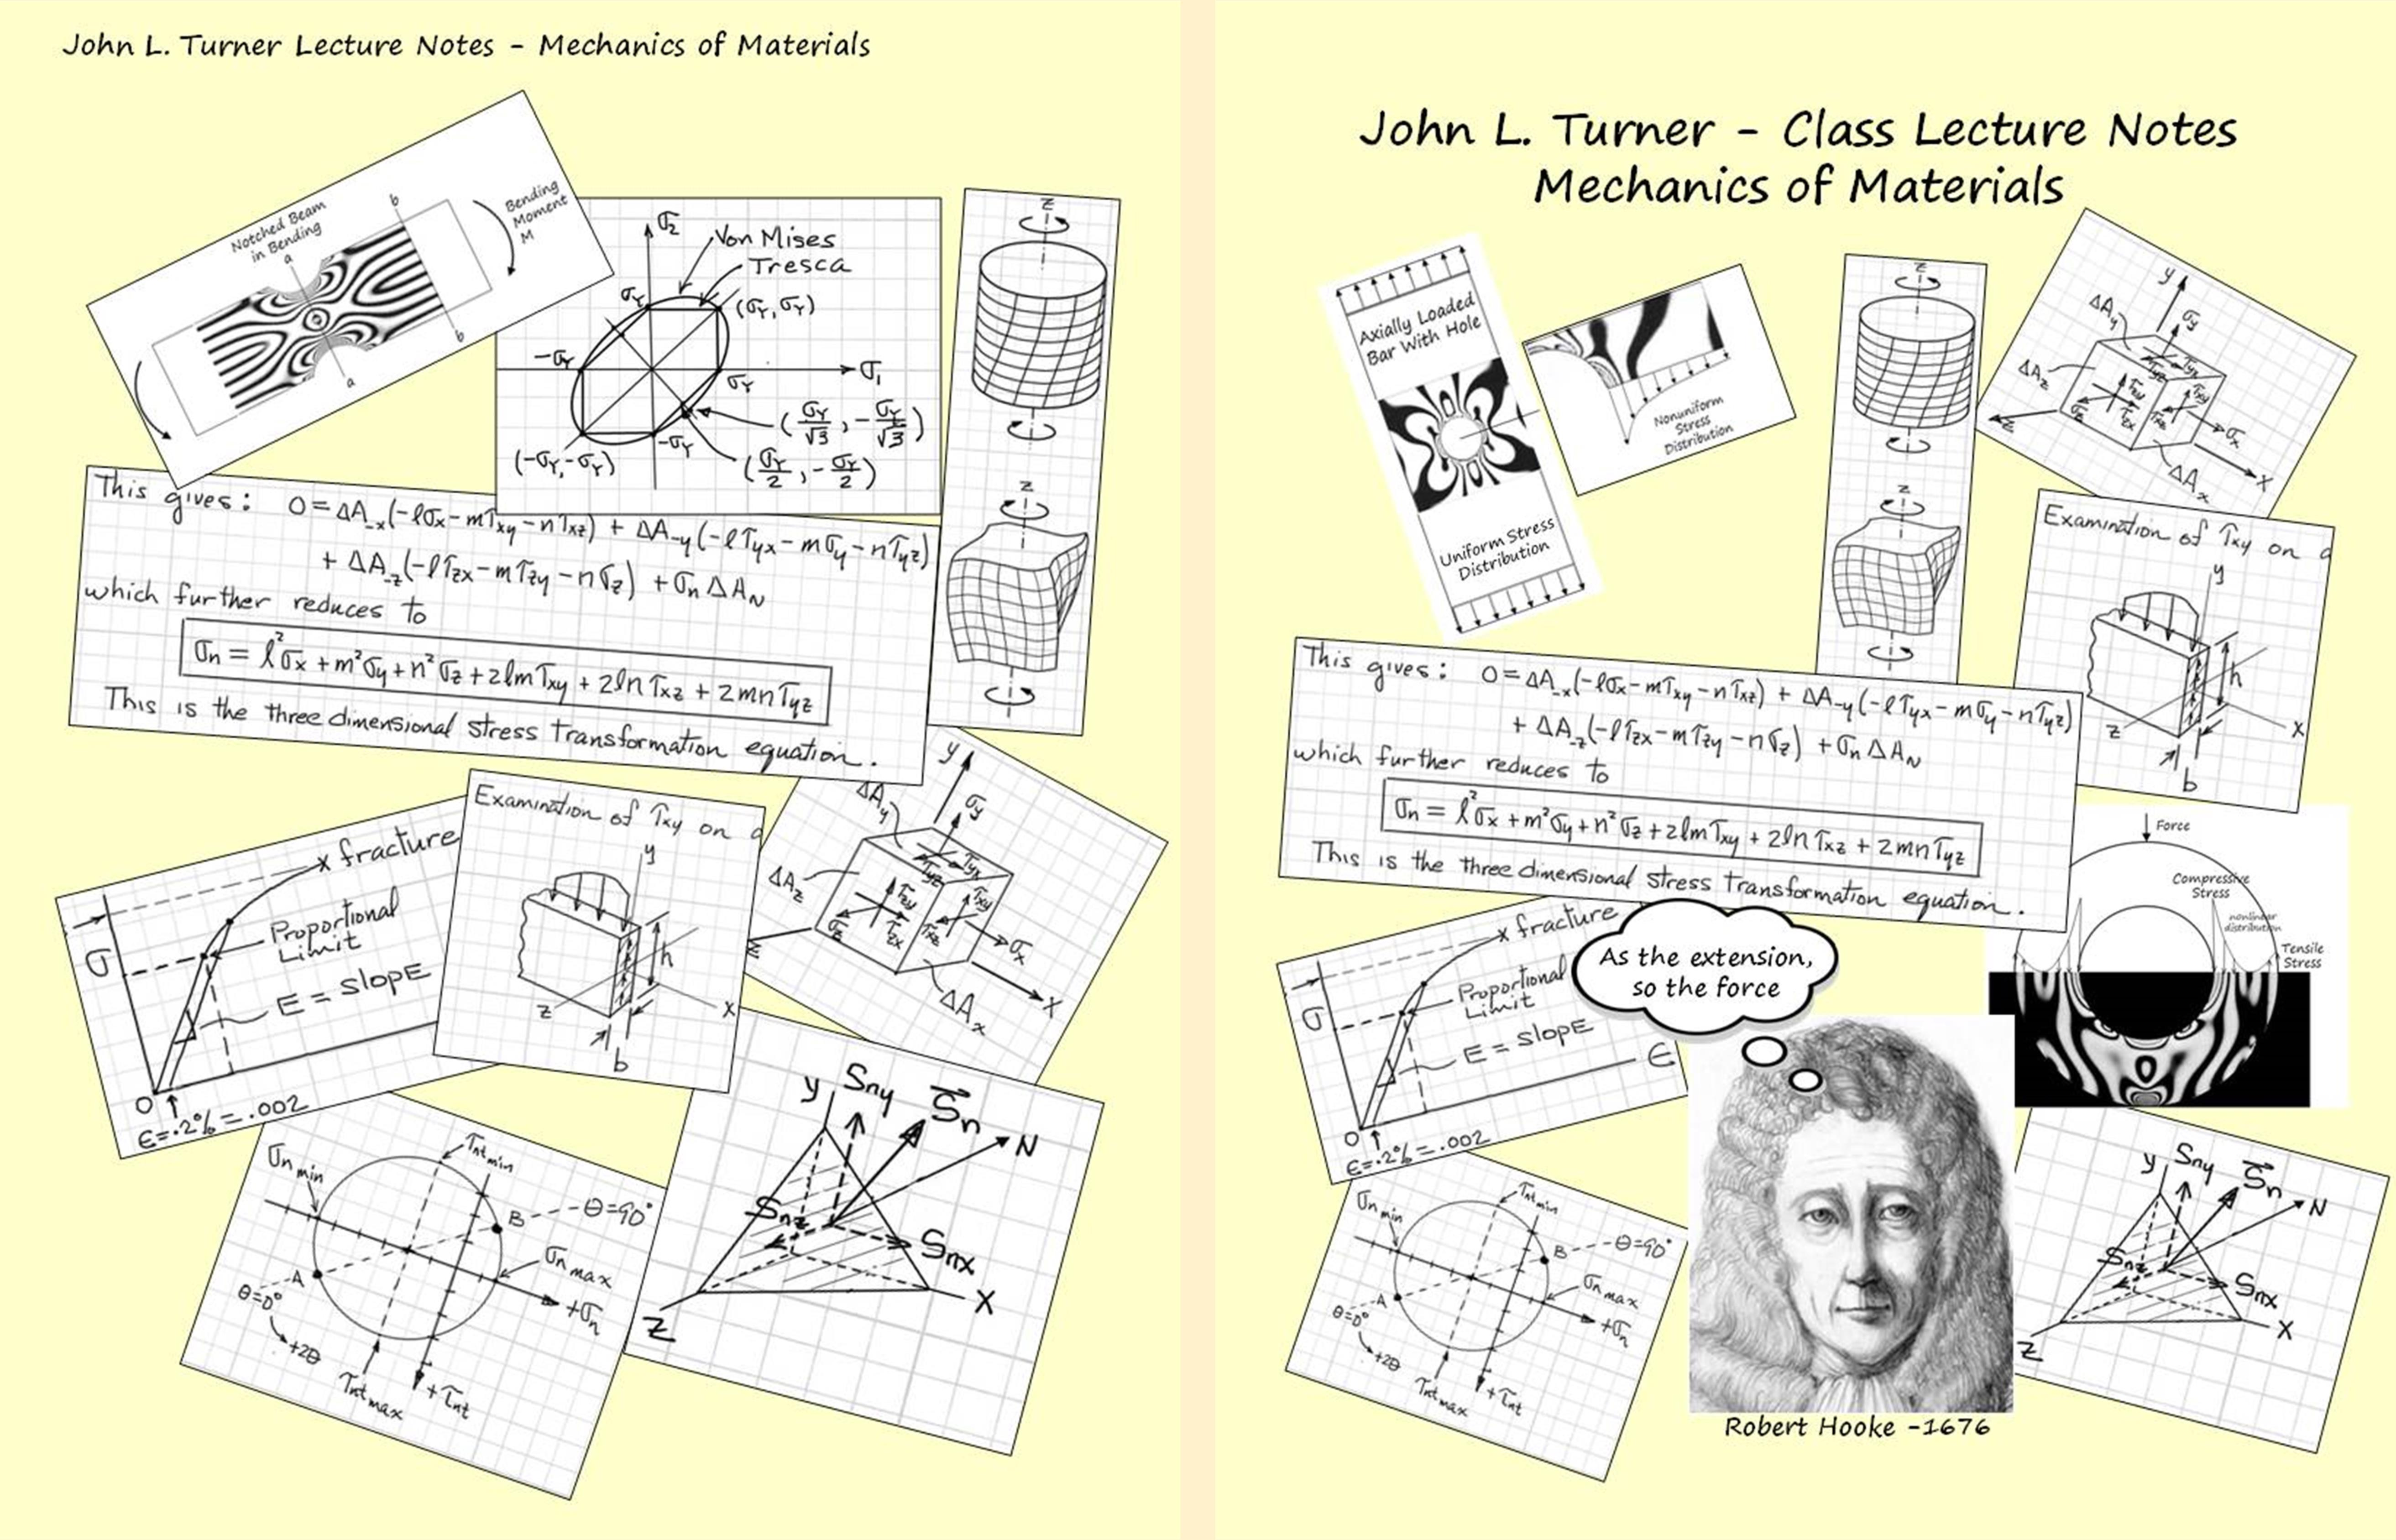 Mechanics of Materials - Lecture Notes by John L  Turner : $20 00